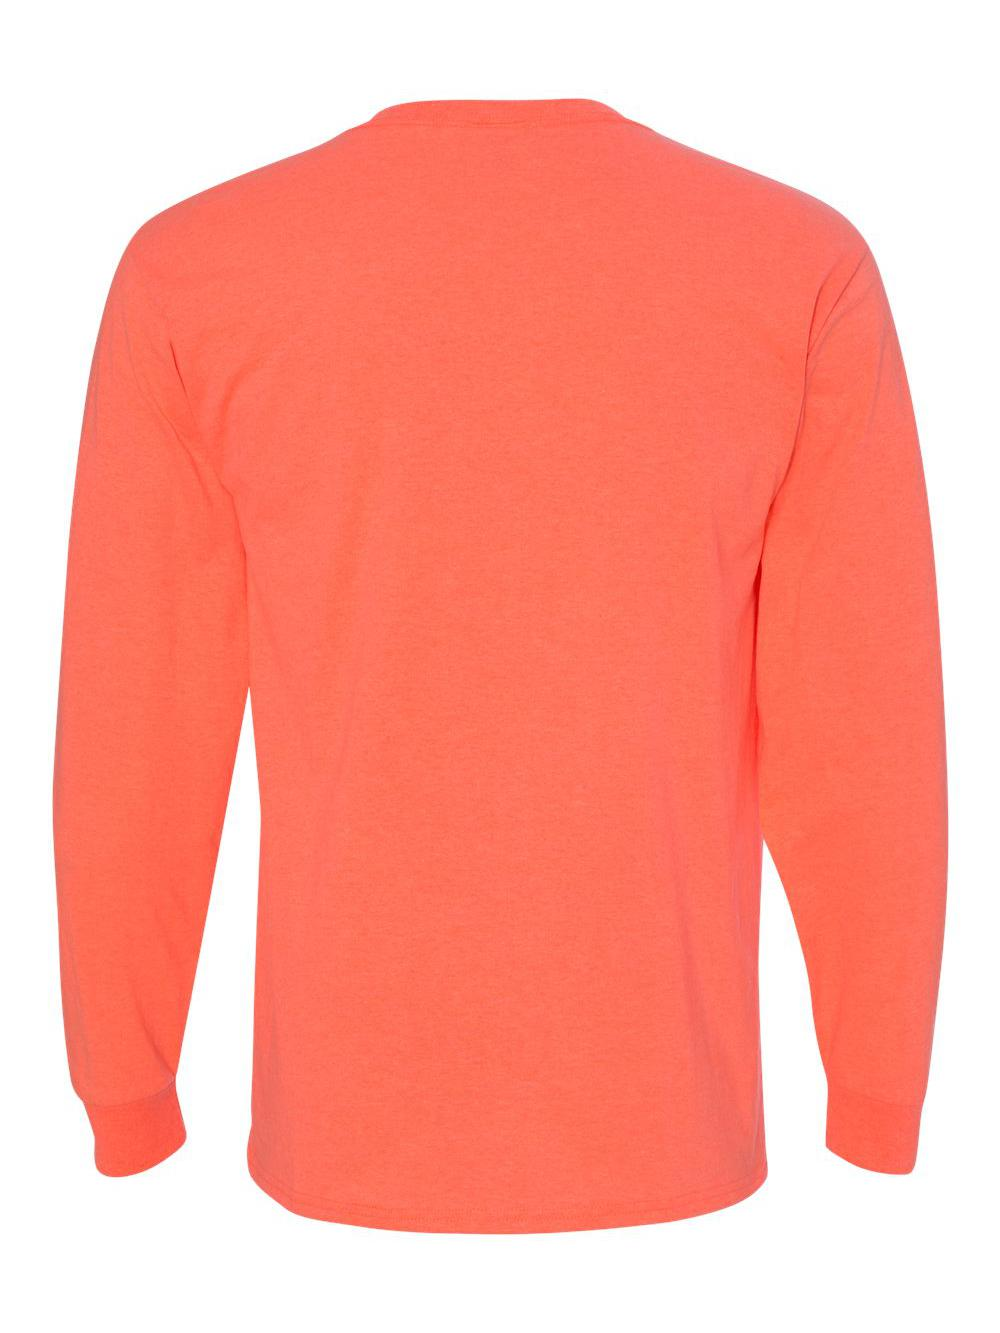 Fruit-of-the-Loom-HD-Cotton-Long-Sleeve-T-Shirt-4930R thumbnail 61